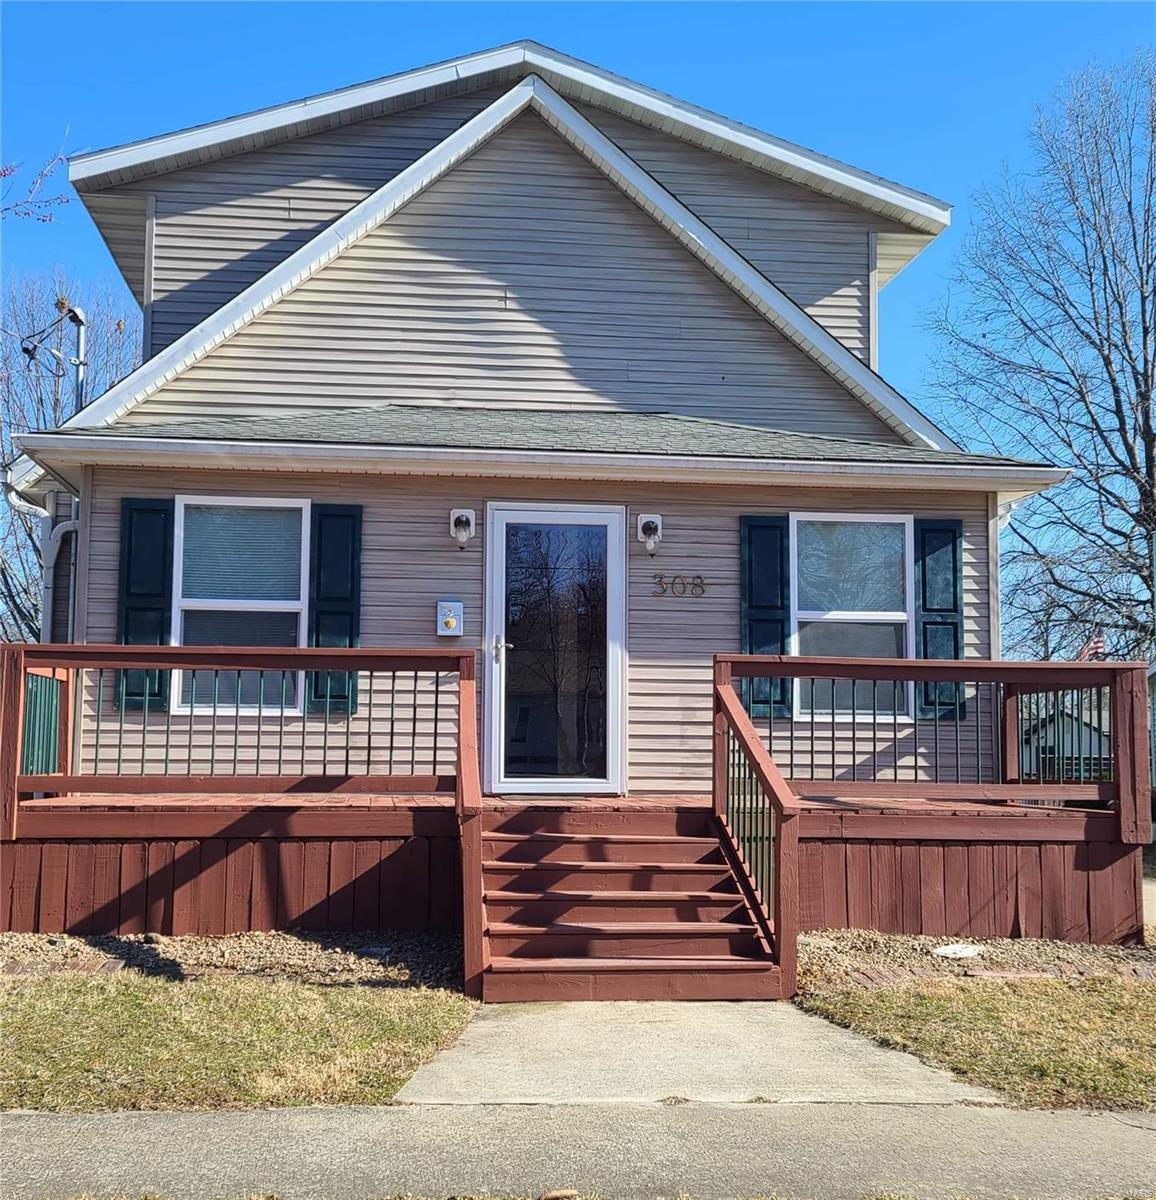 308 S Hickory St Property Photo - Pana, IL real estate listing